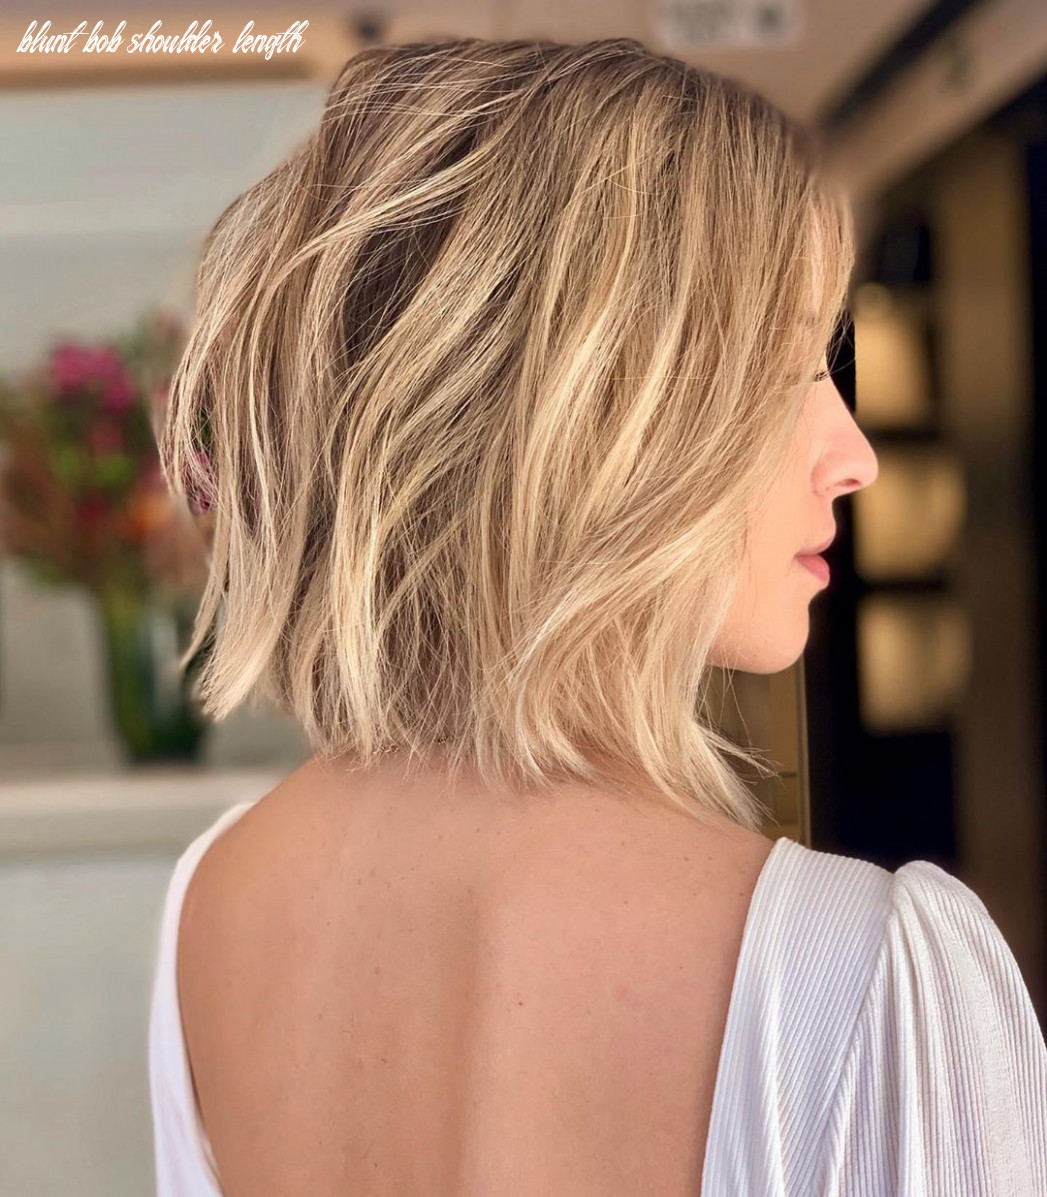 9 blunt cuts and blunt bobs that are dominating in 9 hair